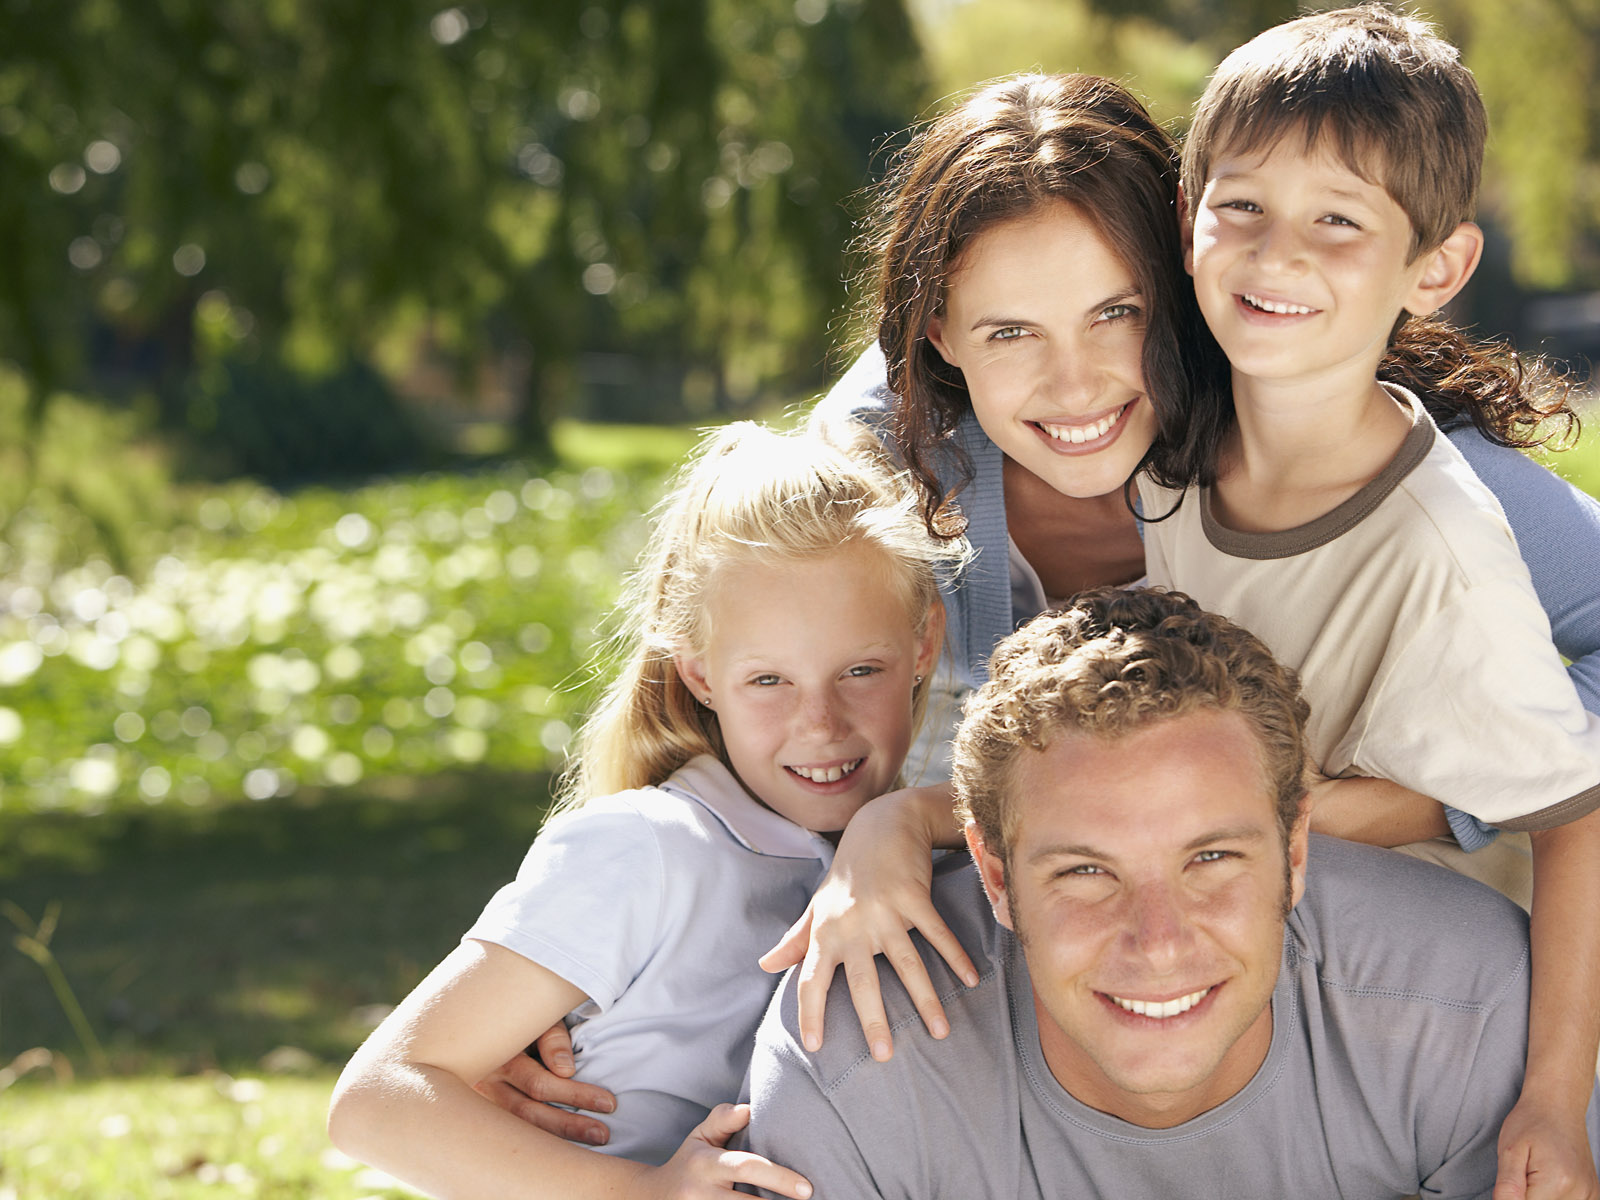 iwallfinder.com-the-second-series-of-happy-family-life-27105 - The National Installment Lenders Association